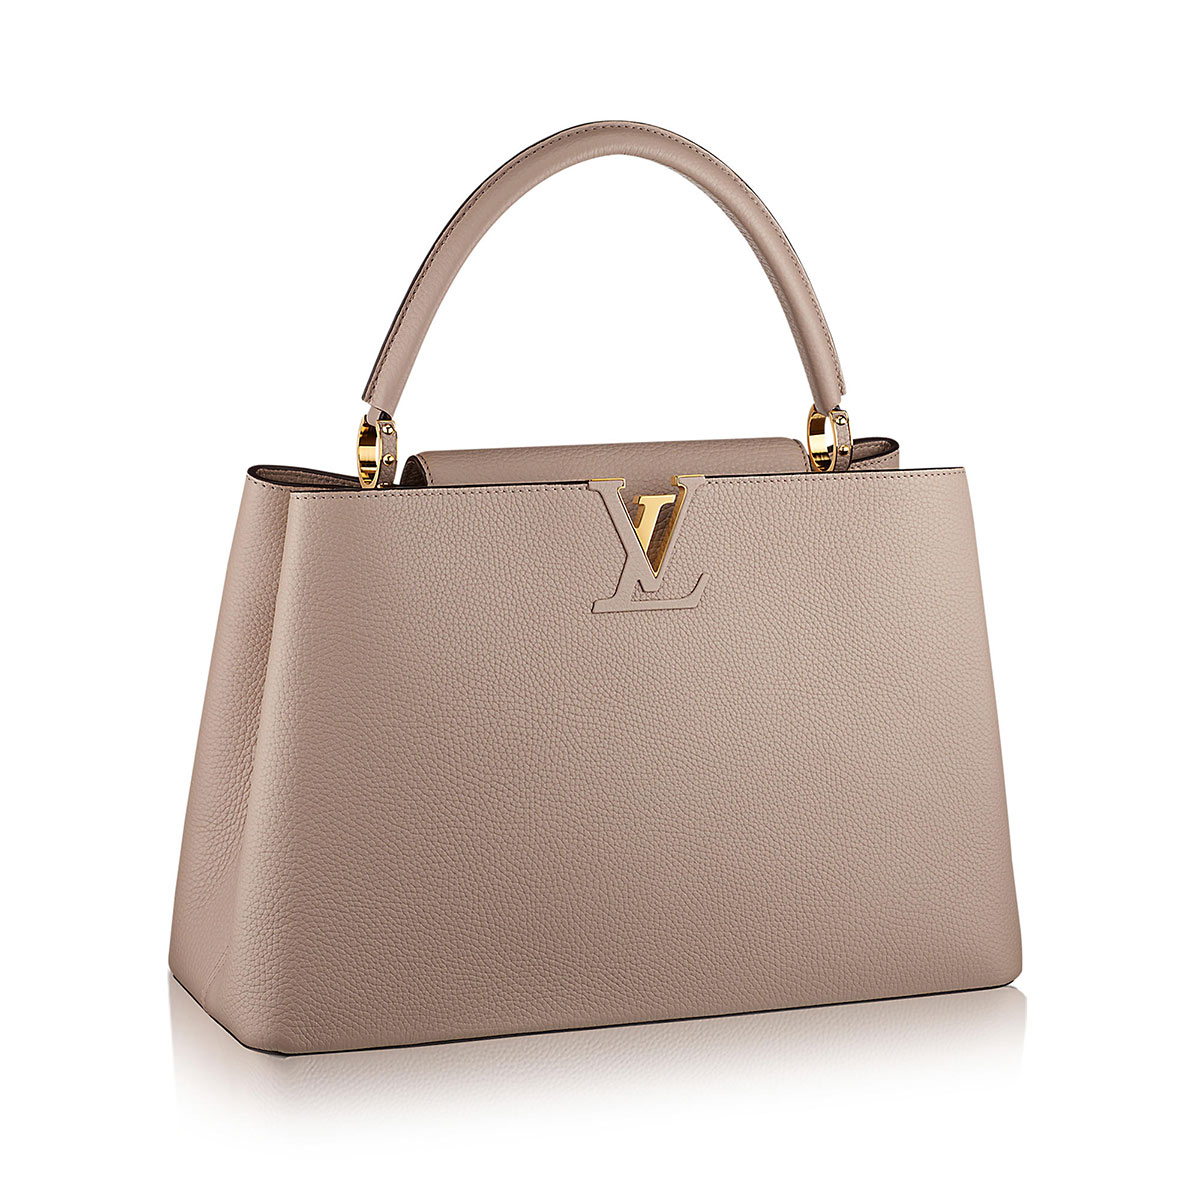 LOUIS VUITTON Taurillon Capucines GM Galet